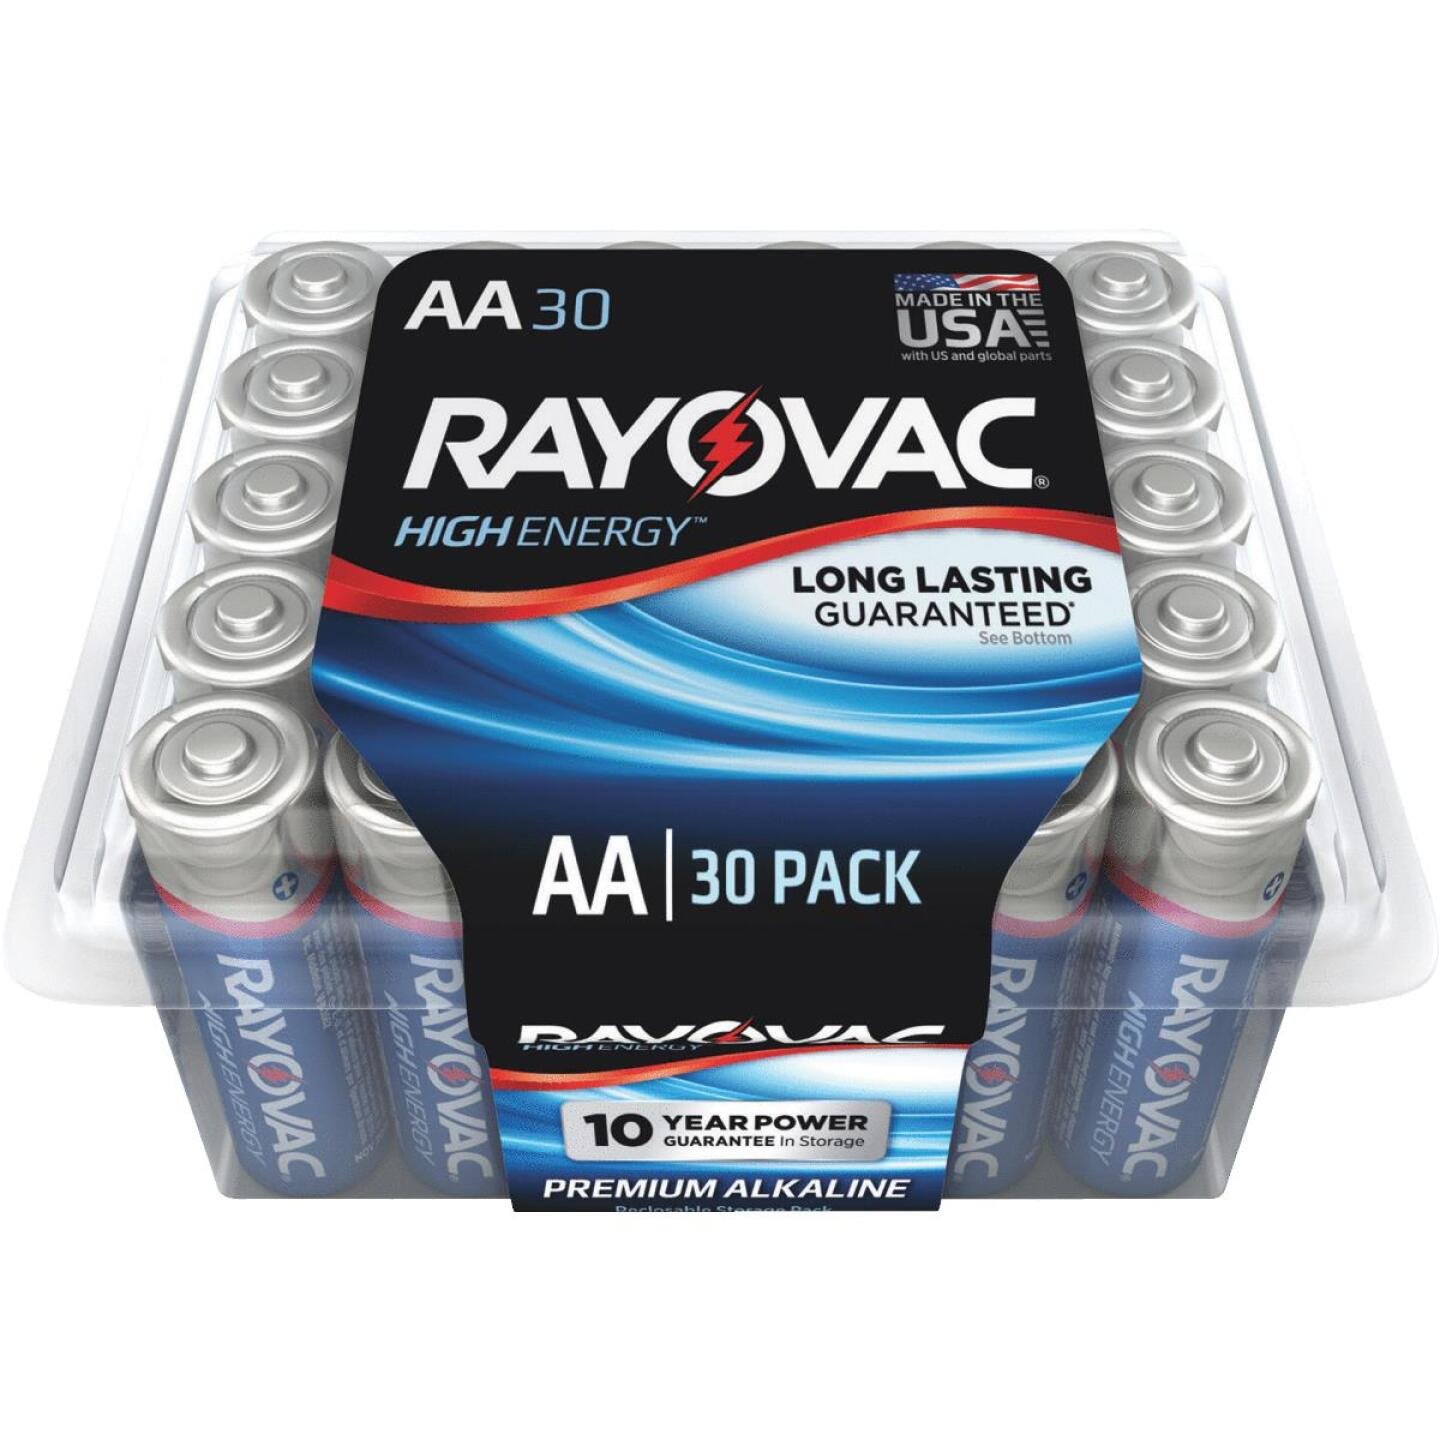 Rayovac High Energy AA Alkaline Battery (30-Pack) Image 1